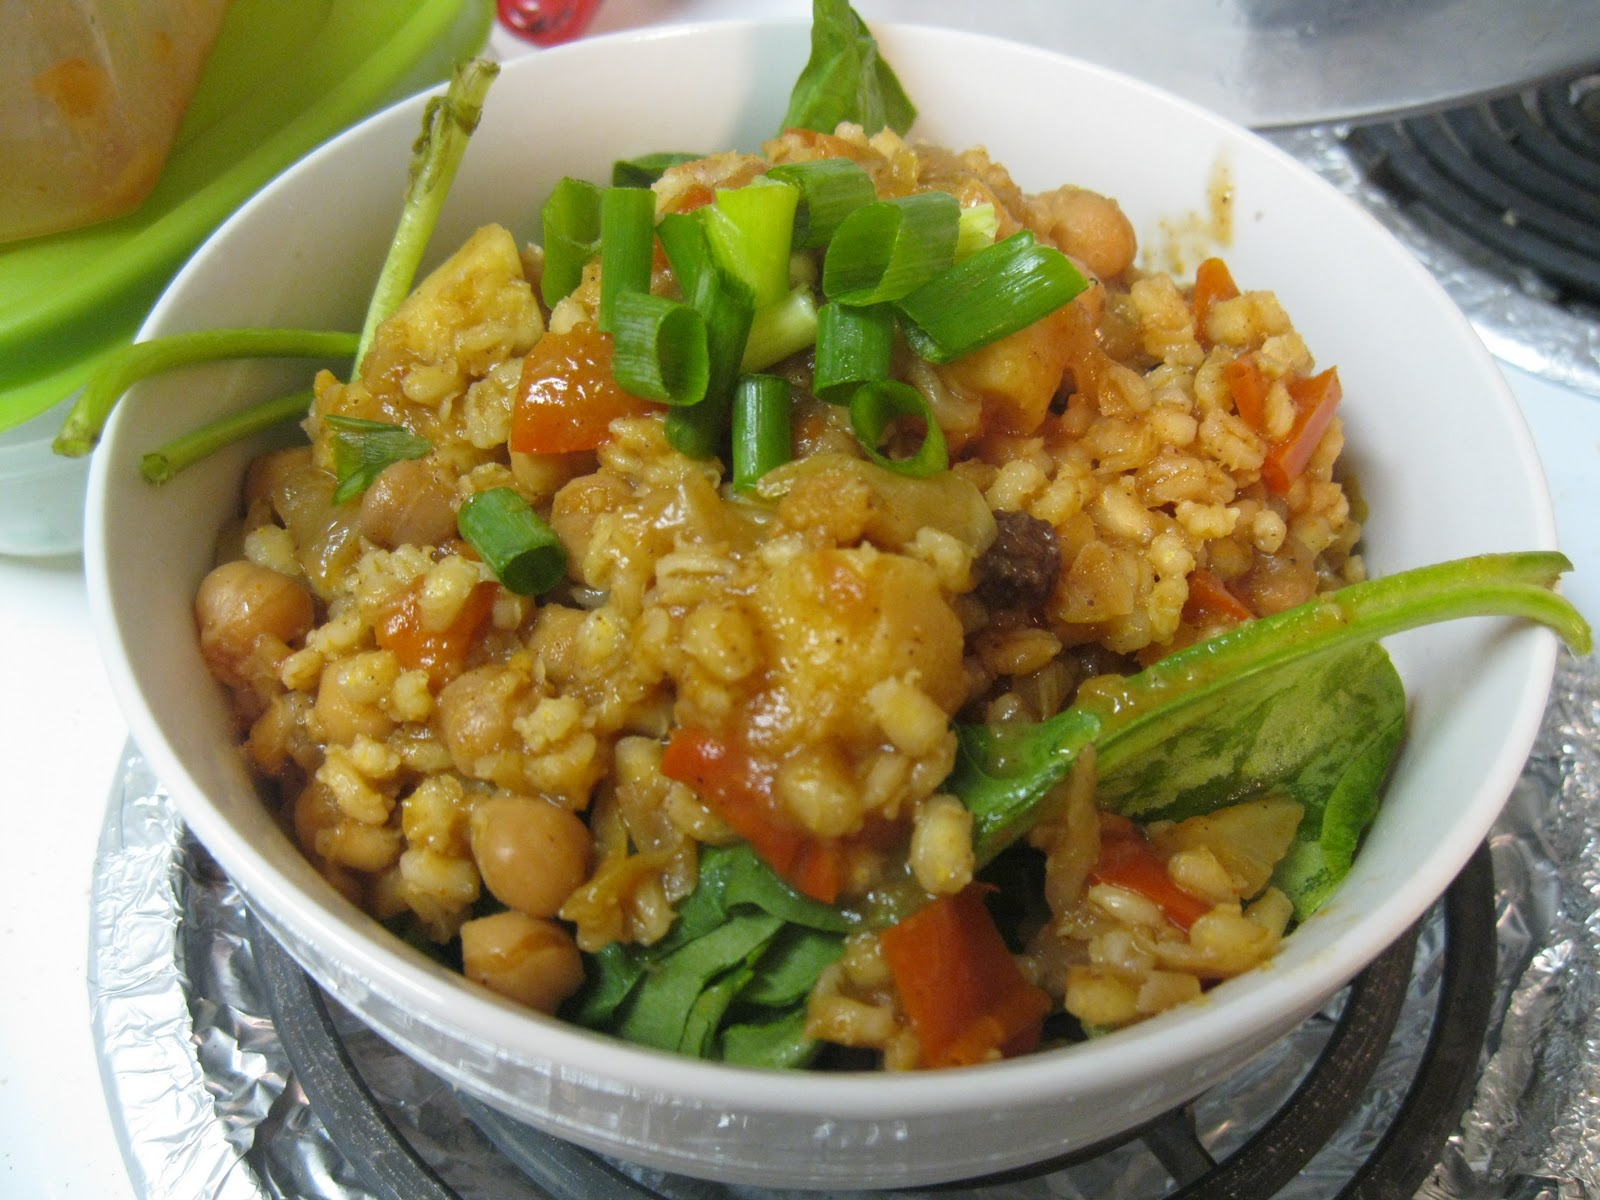 Moroccan Barley Stew after barley is cooked